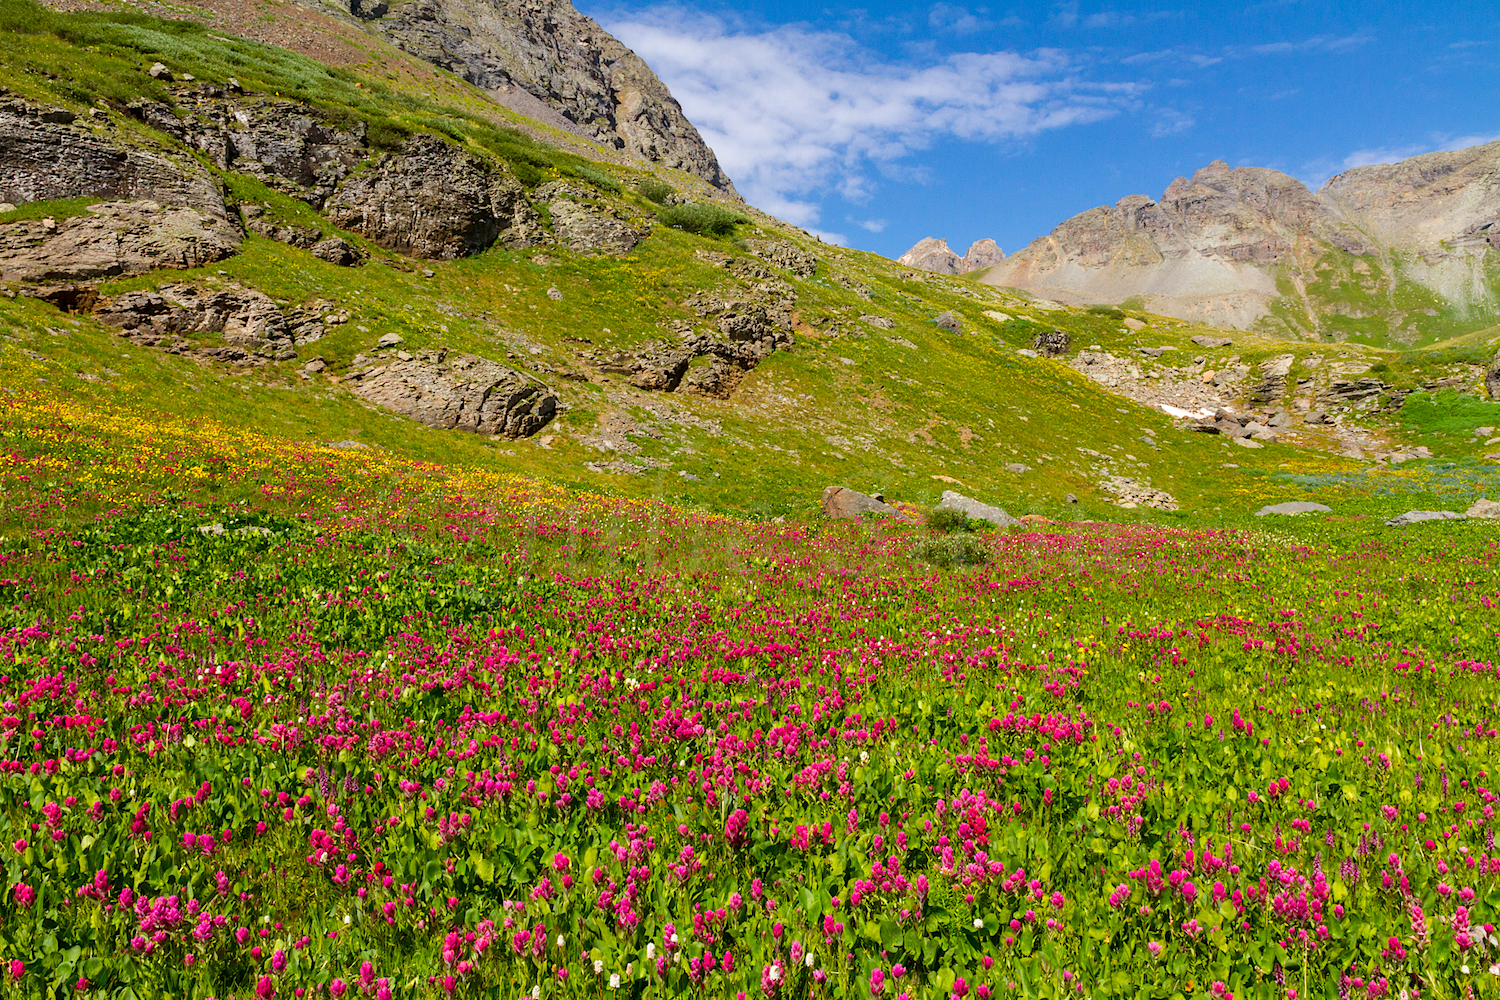 Clear Lake Wildflowers, Image # 3750